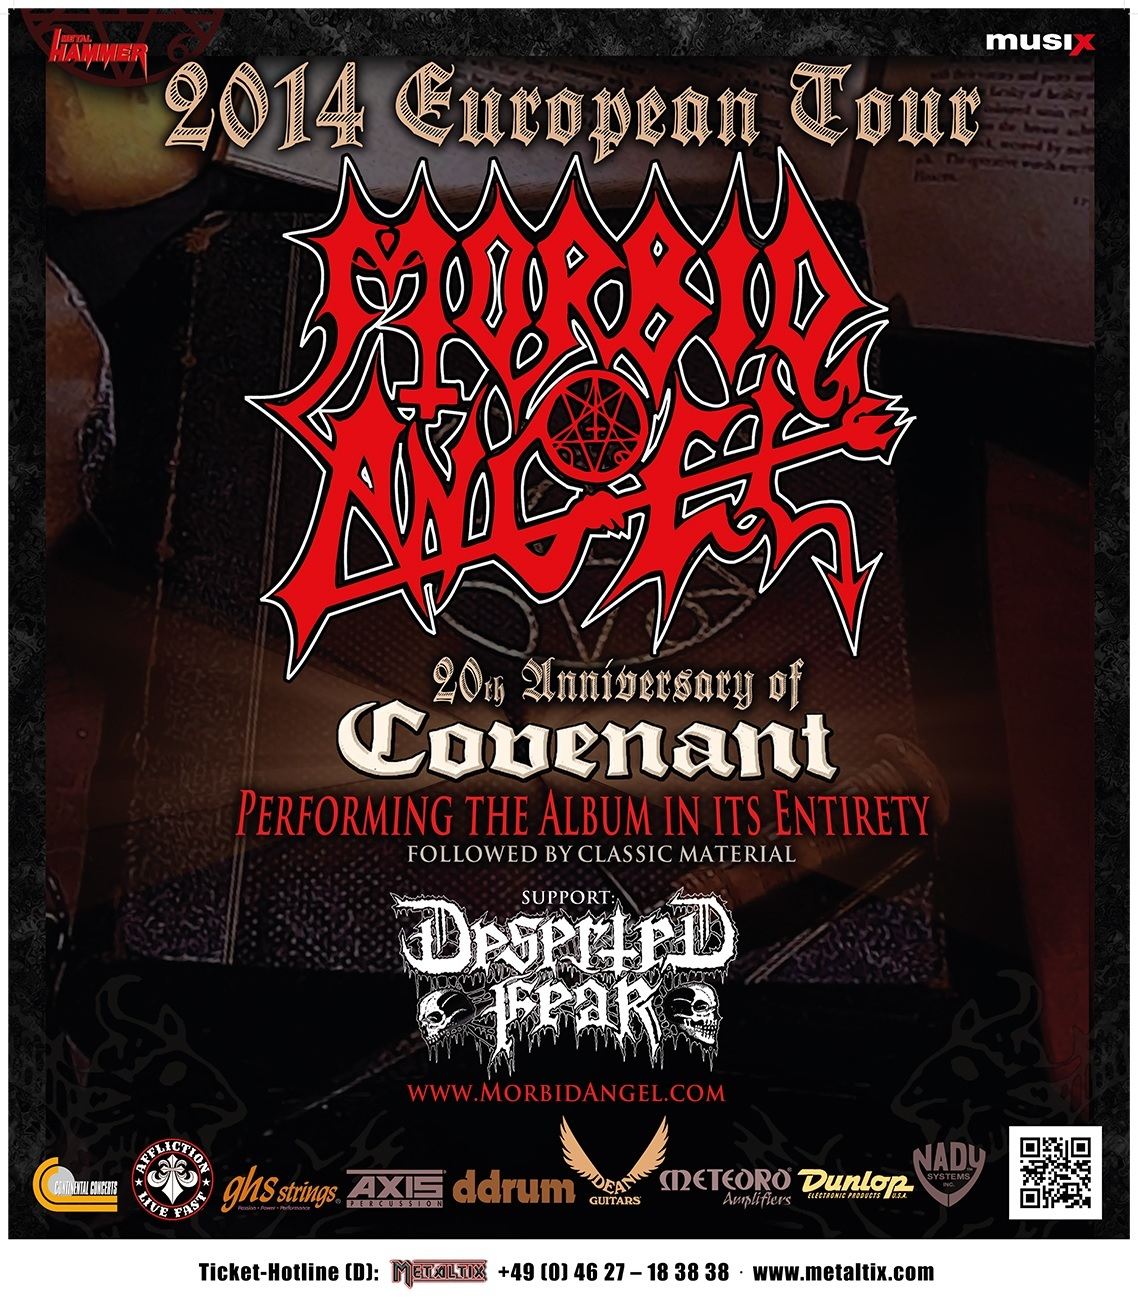 MORBID ANGEL Covenant TourposterA1 2014